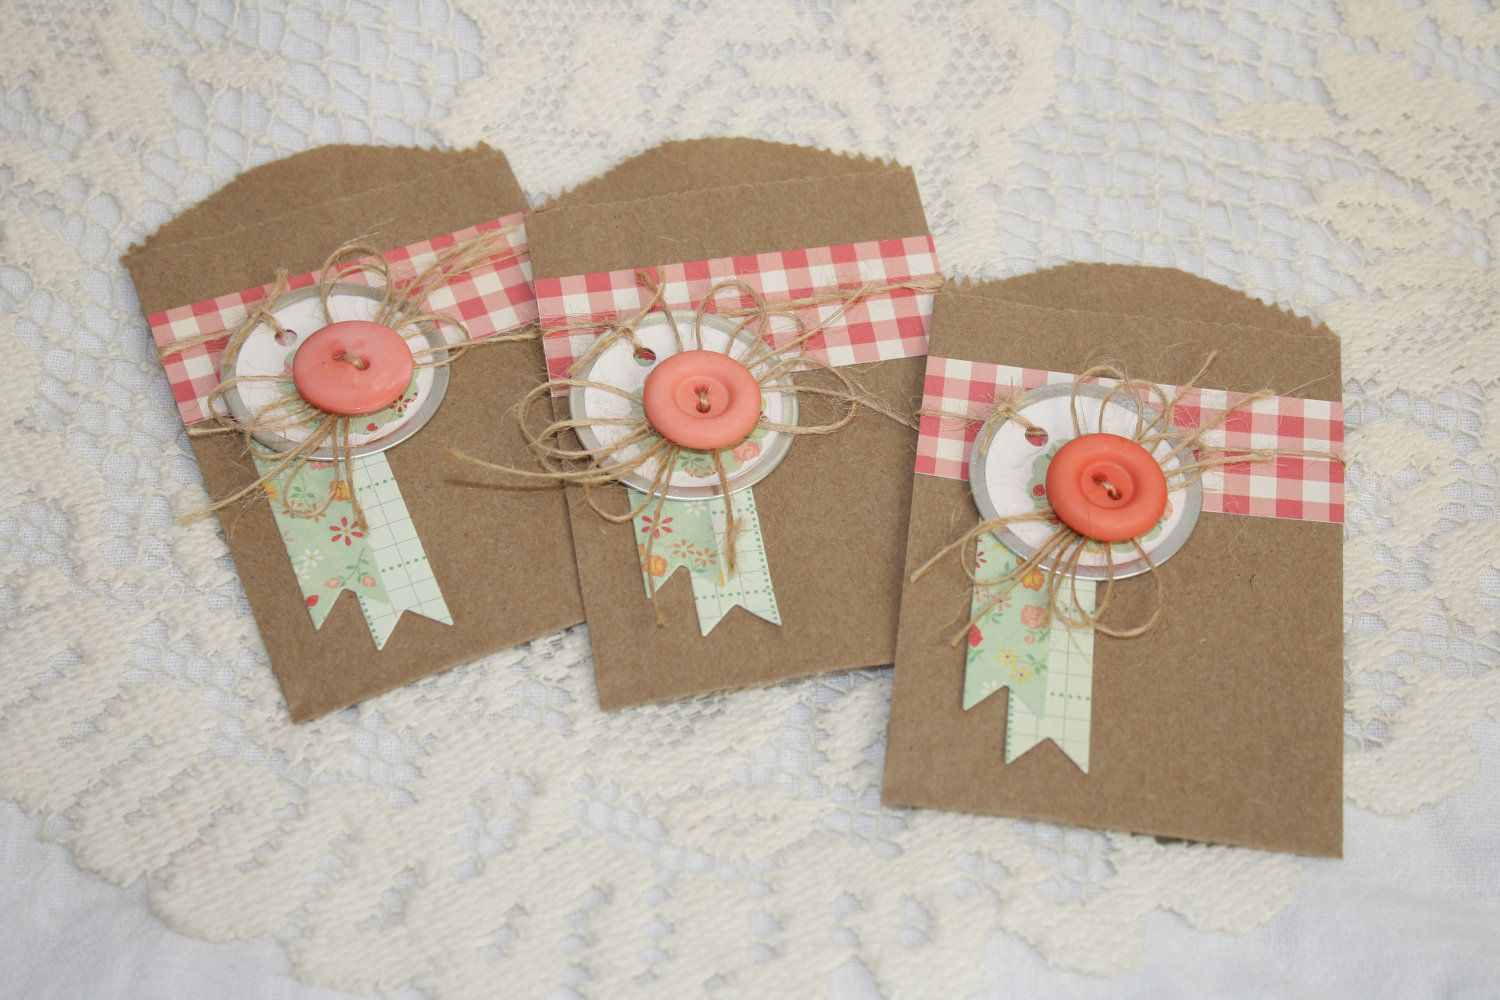 Handmade All Occasion Embellished Paper Gift Bags - Set of 3